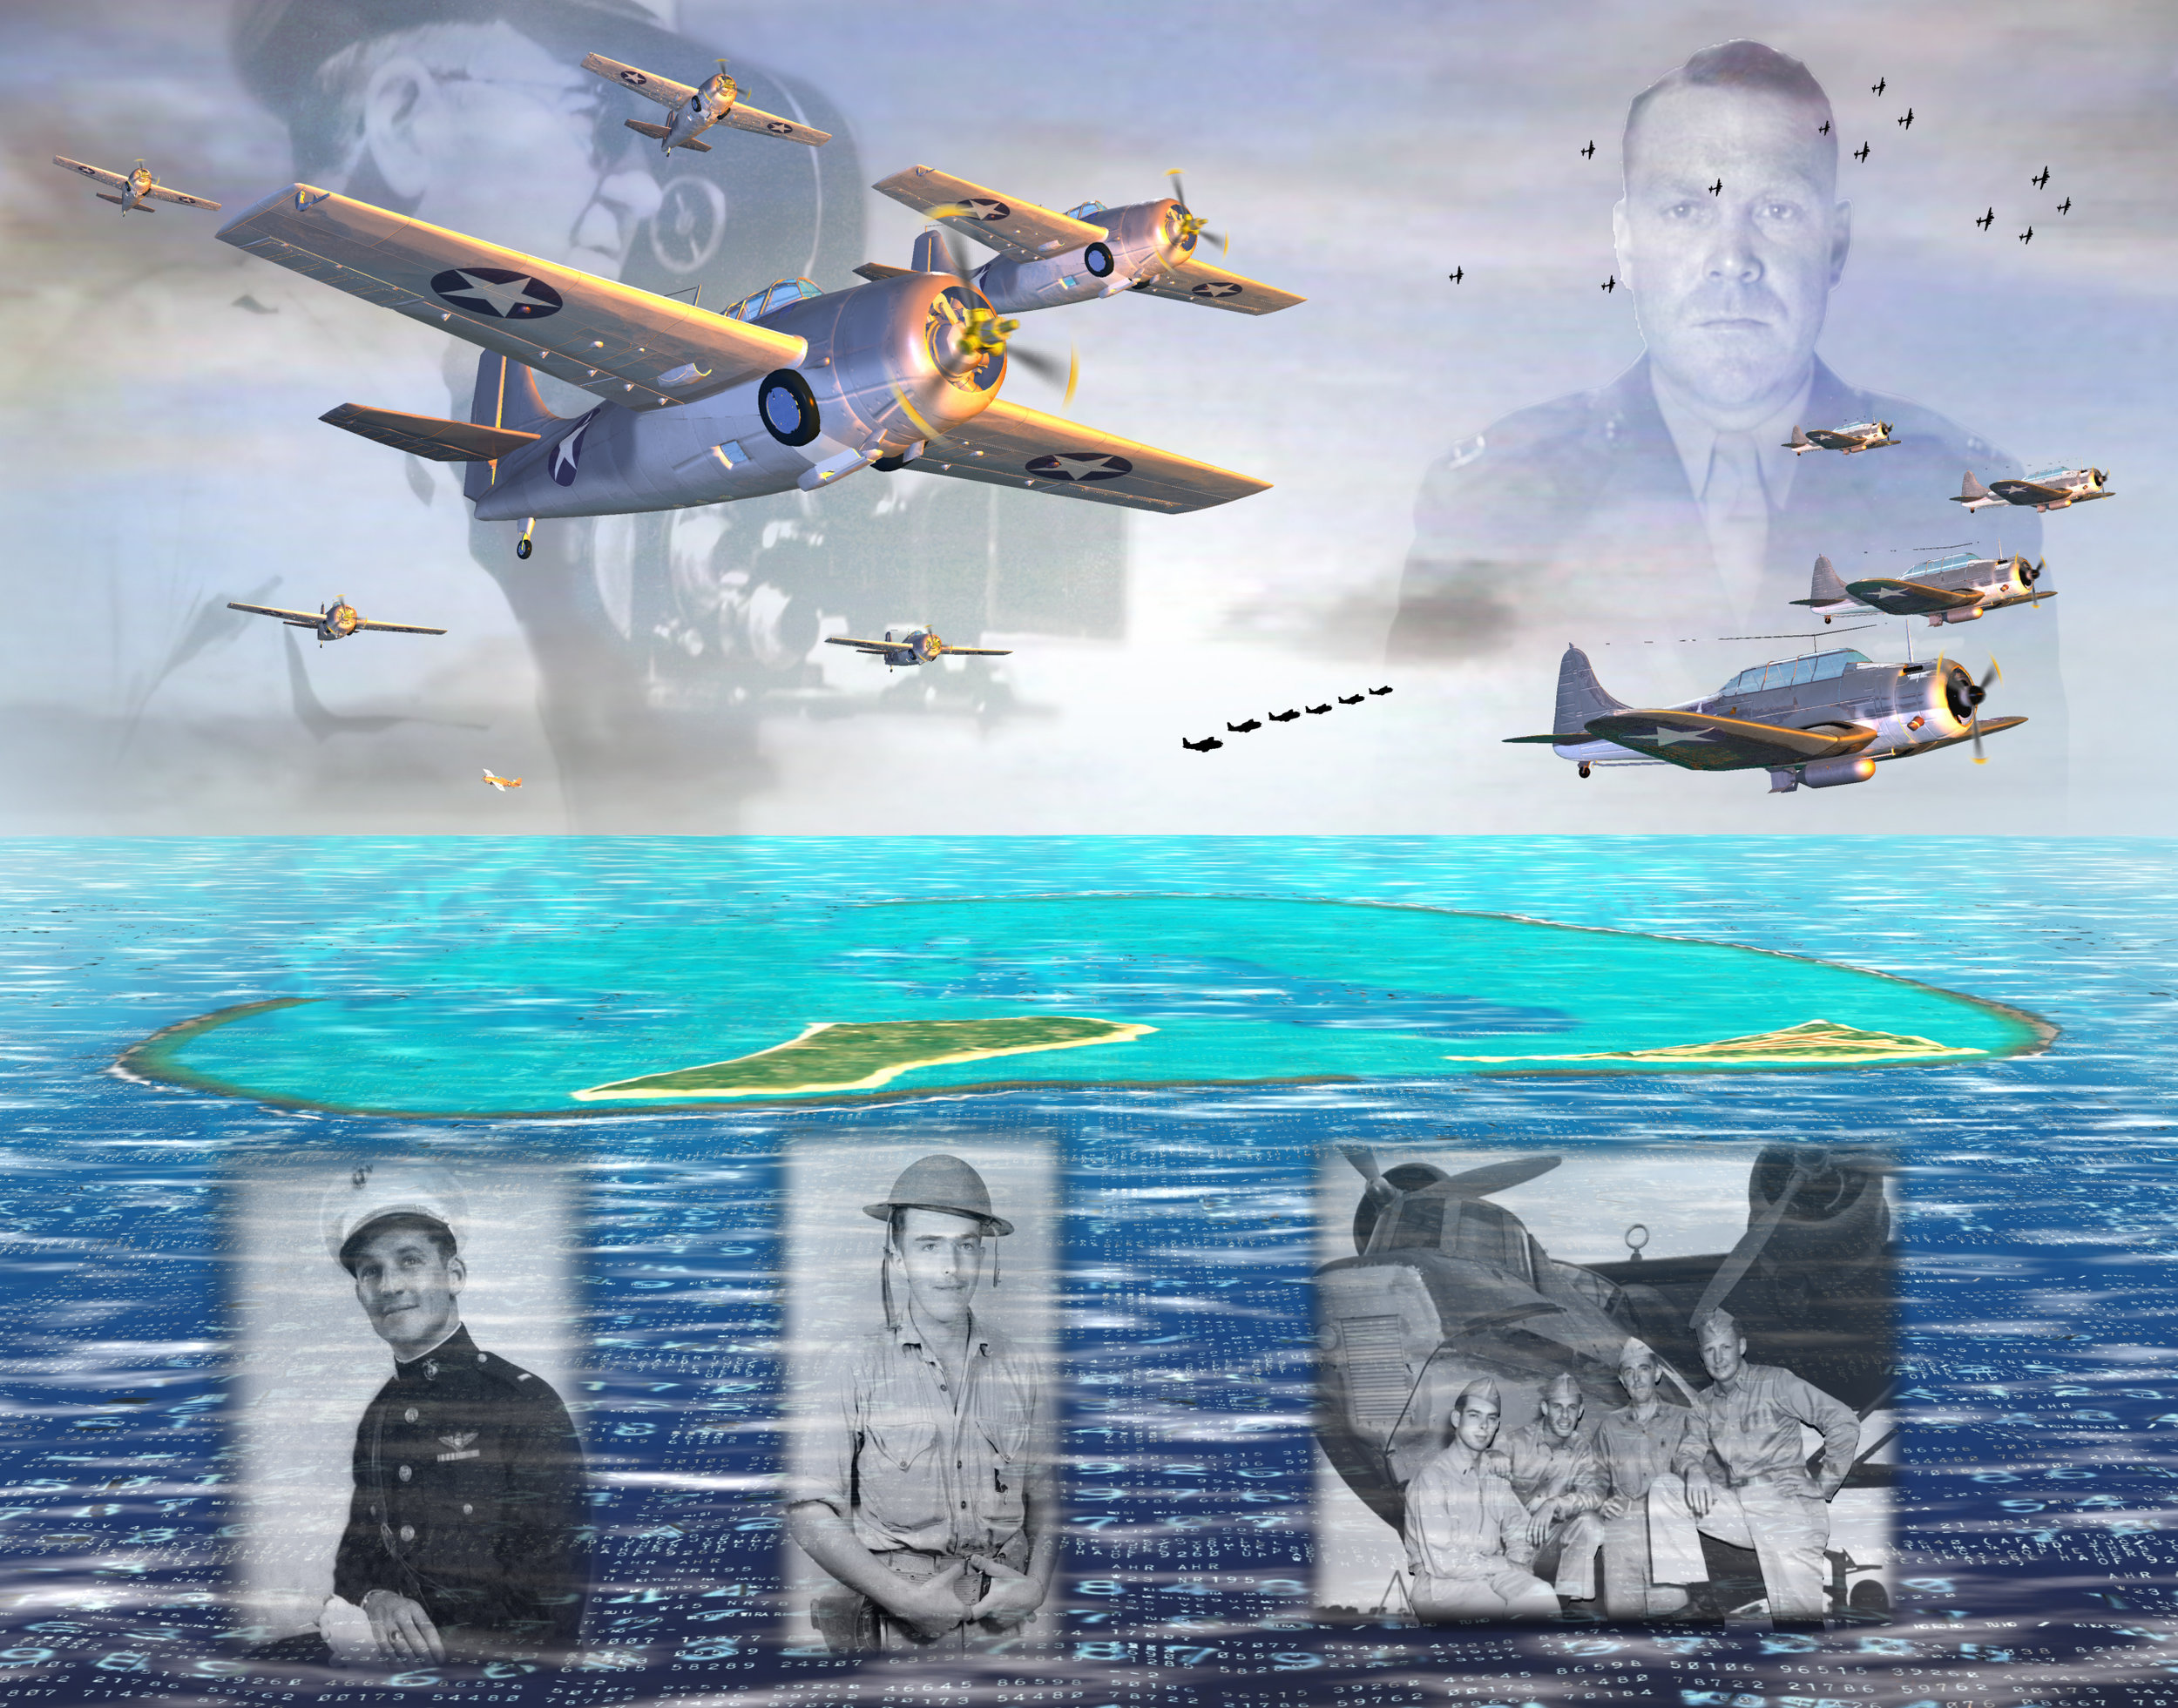 Battle of Midway Memorial detail, Part II: Midway Defenders, 2001